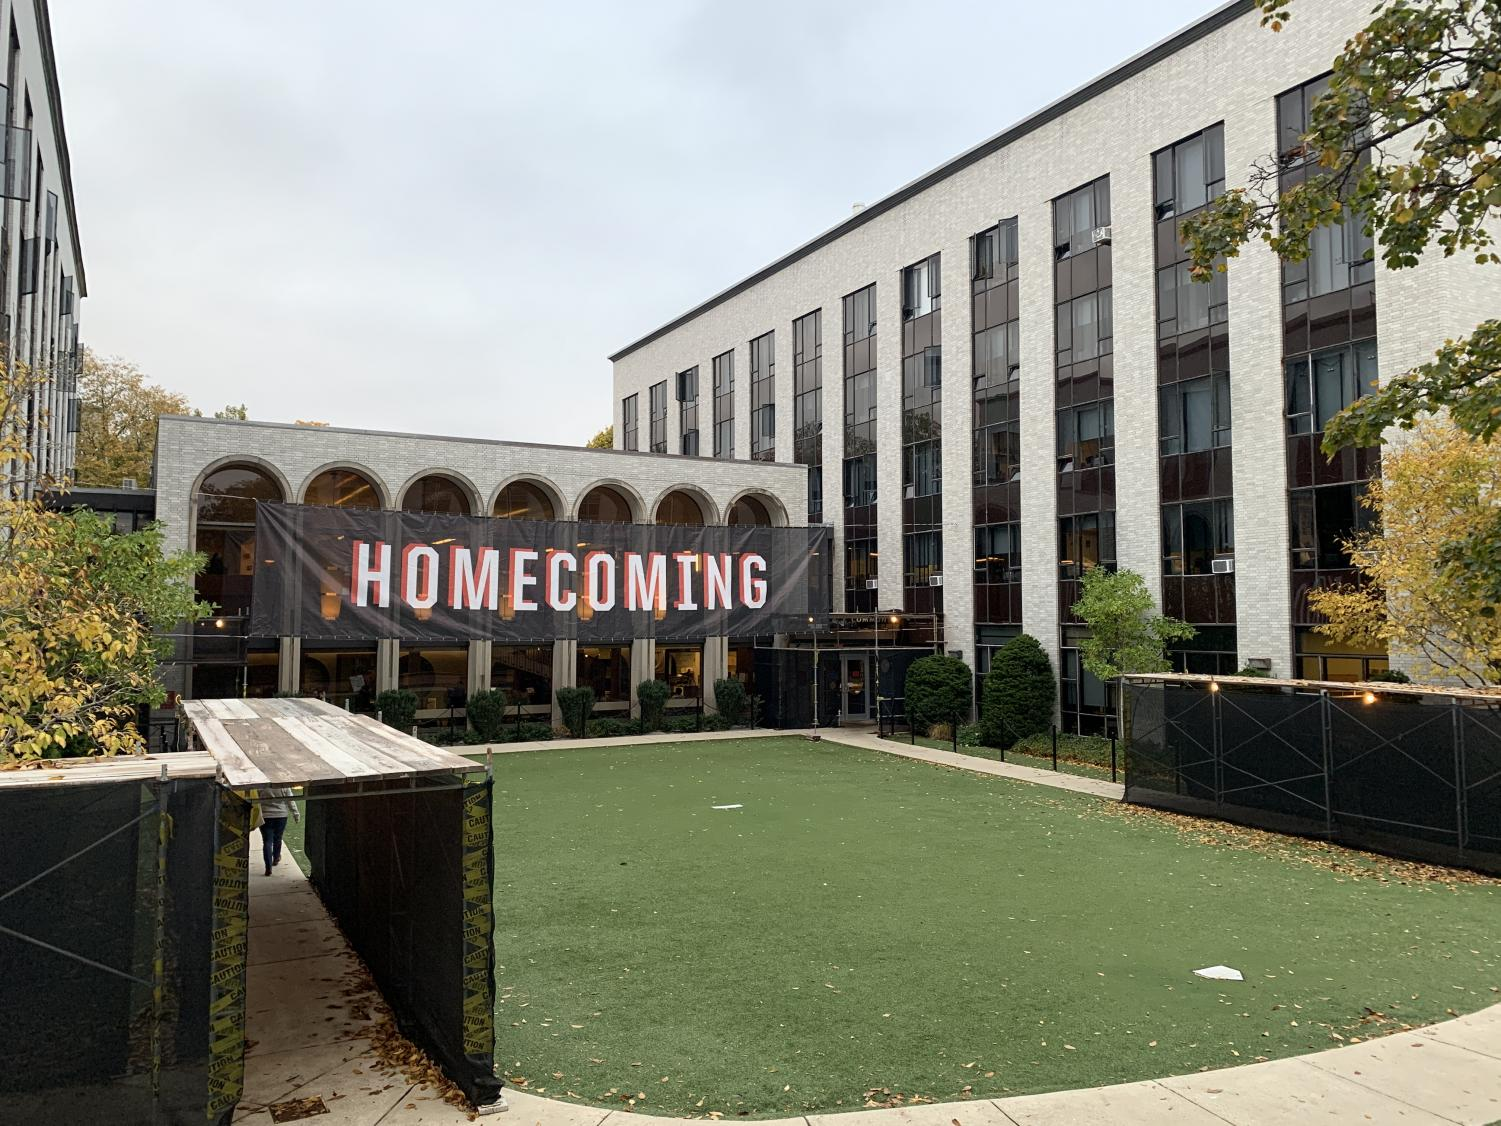 A Homecoming banner hangs on the side of Speare Hall.